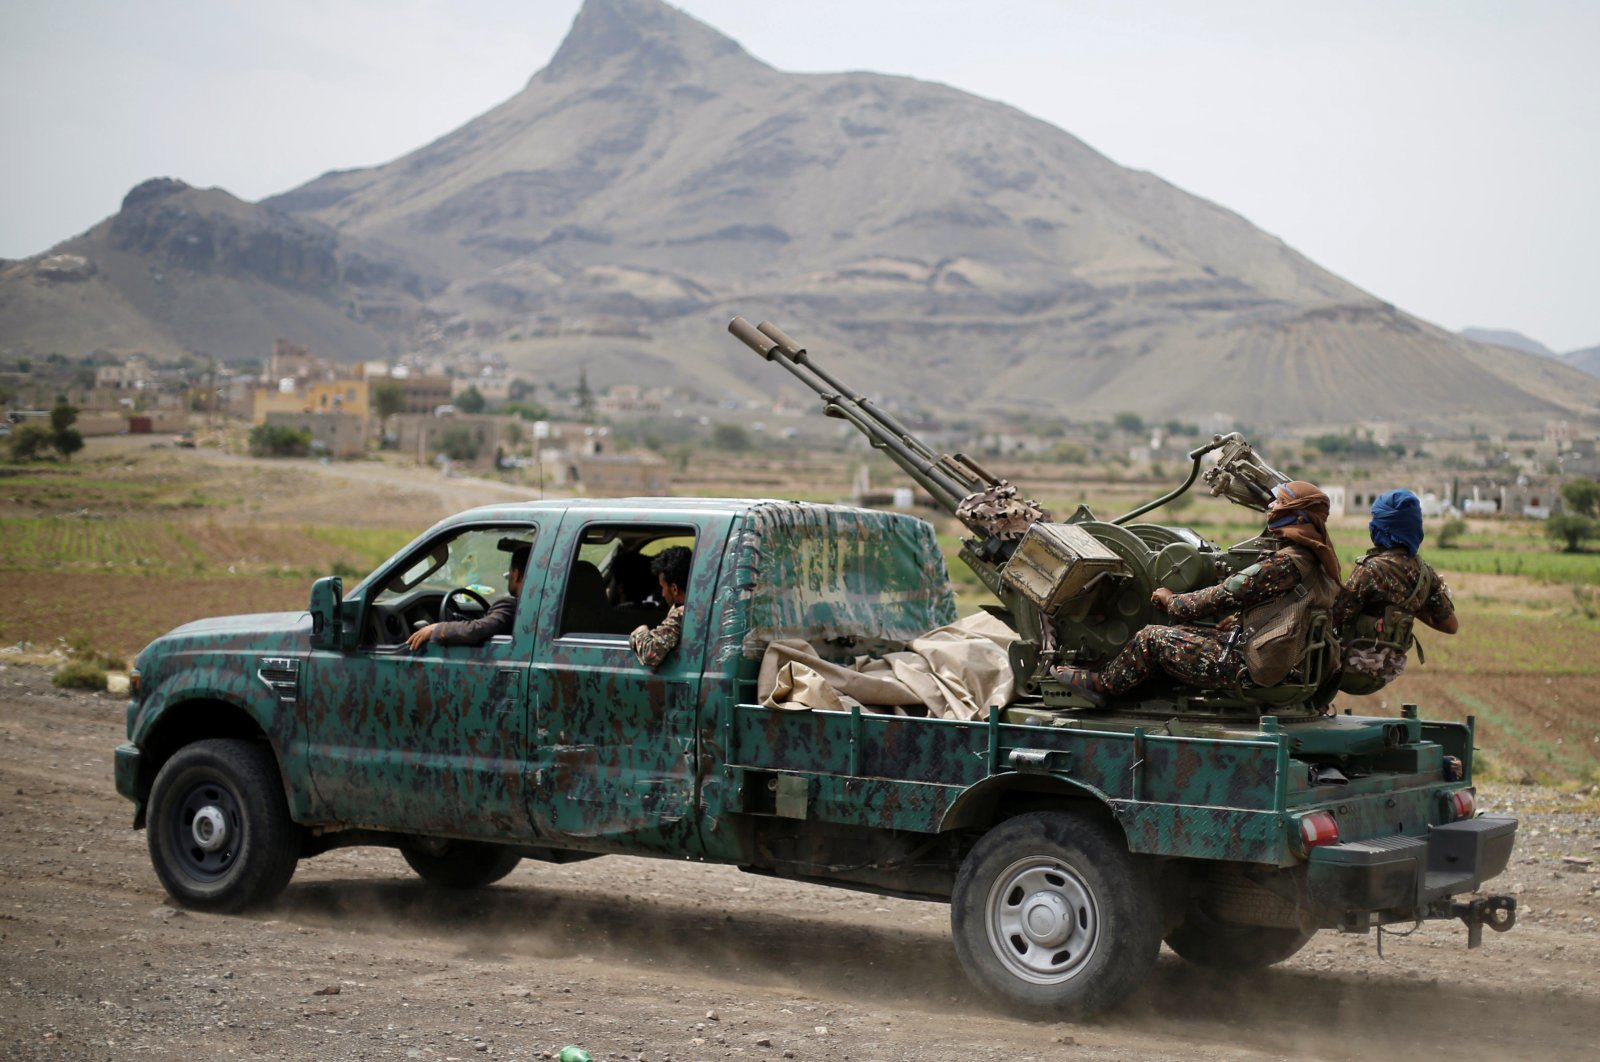 Houthi fighters man a machine gun mounted on a military truck as they parade during a gathering of Houthi loyalists on the outskirts of Sanaa, Yemen July 8, 2020. (Reuters Photo)